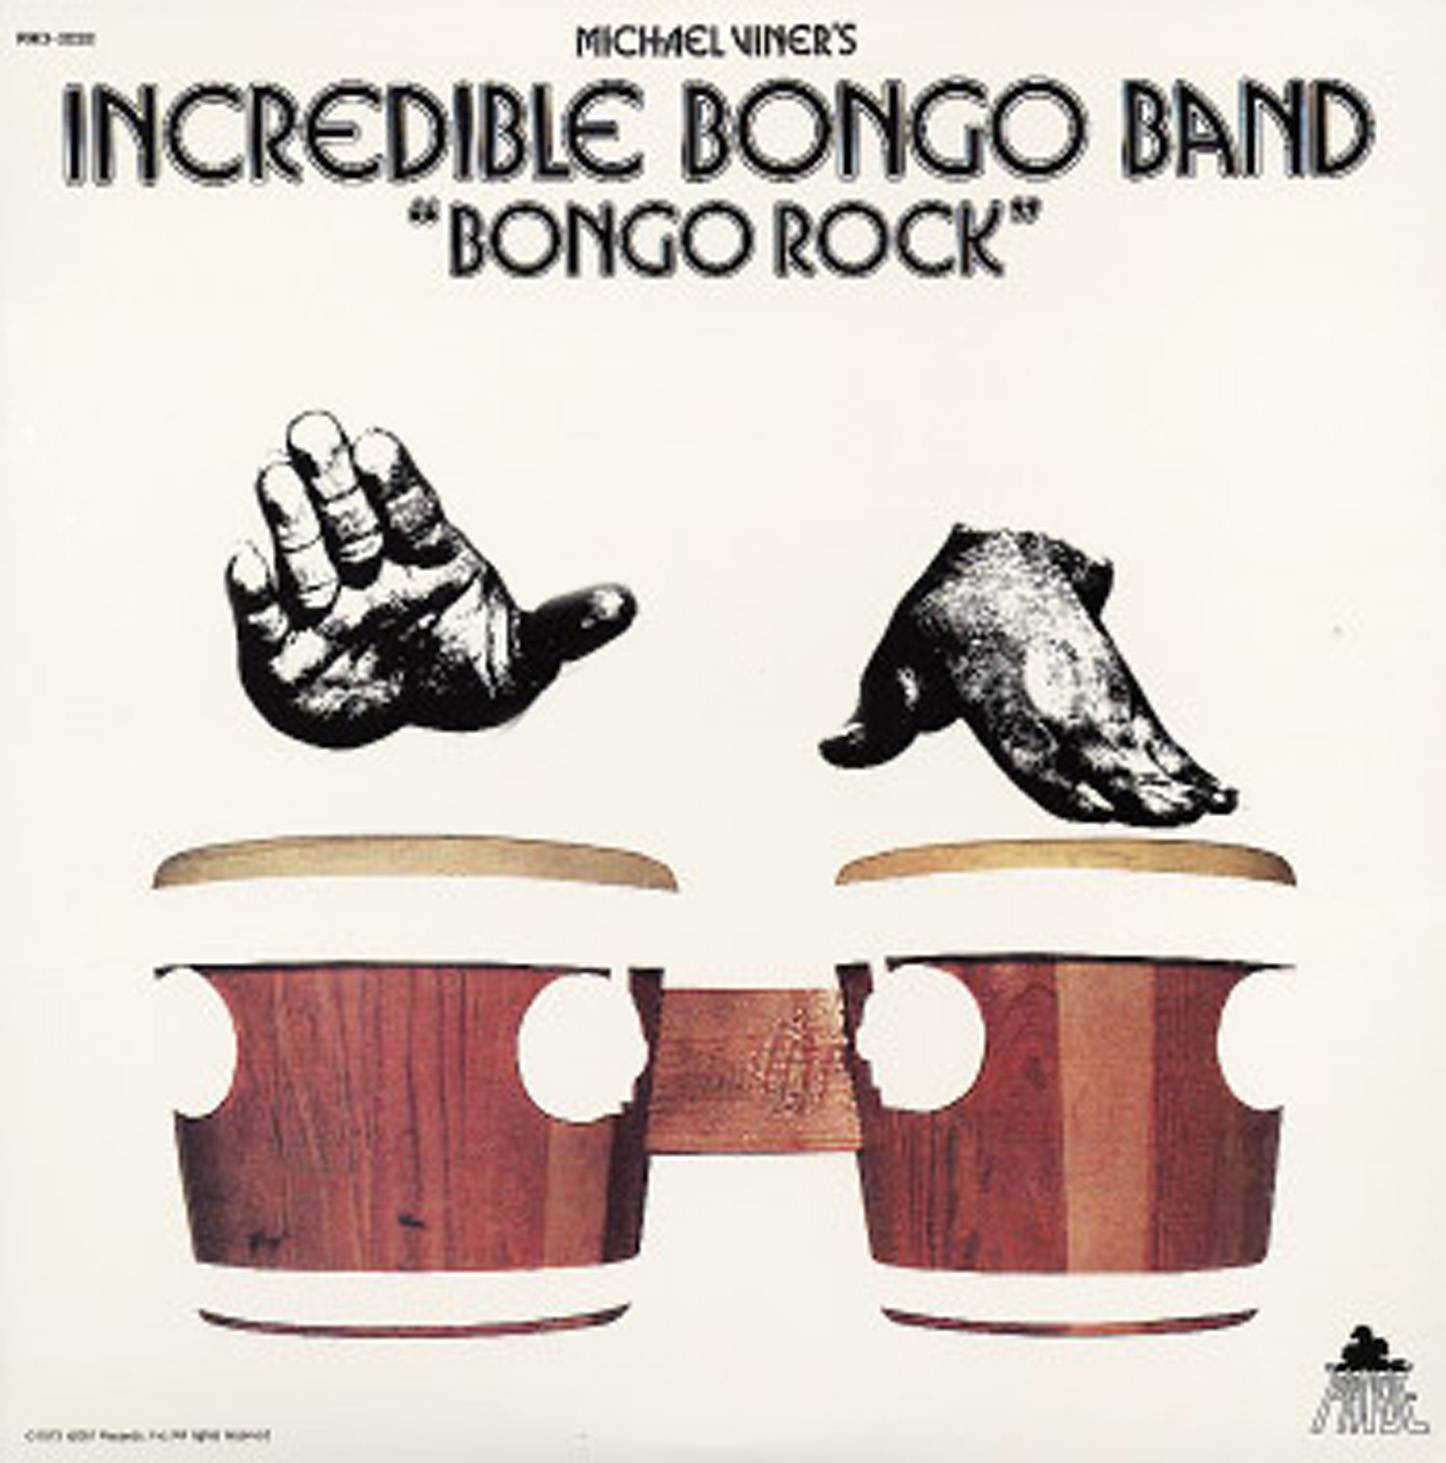 """The Incredible Bongo Band, 'Apache' - The New York Times quoted DJ Kool Herc calling this song """"the national anthem of hip hop,"""" and who are we to disagree with the genre's godfather? One of the earliest B-boy breaks, the percussion-filled song from the 1972 album Bongo Rockhas been sampled by Nas (""""Made You Look""""), Missy Elliott (""""We Run This"""") and several key old-school hits.  (Photo: Pride Records)"""